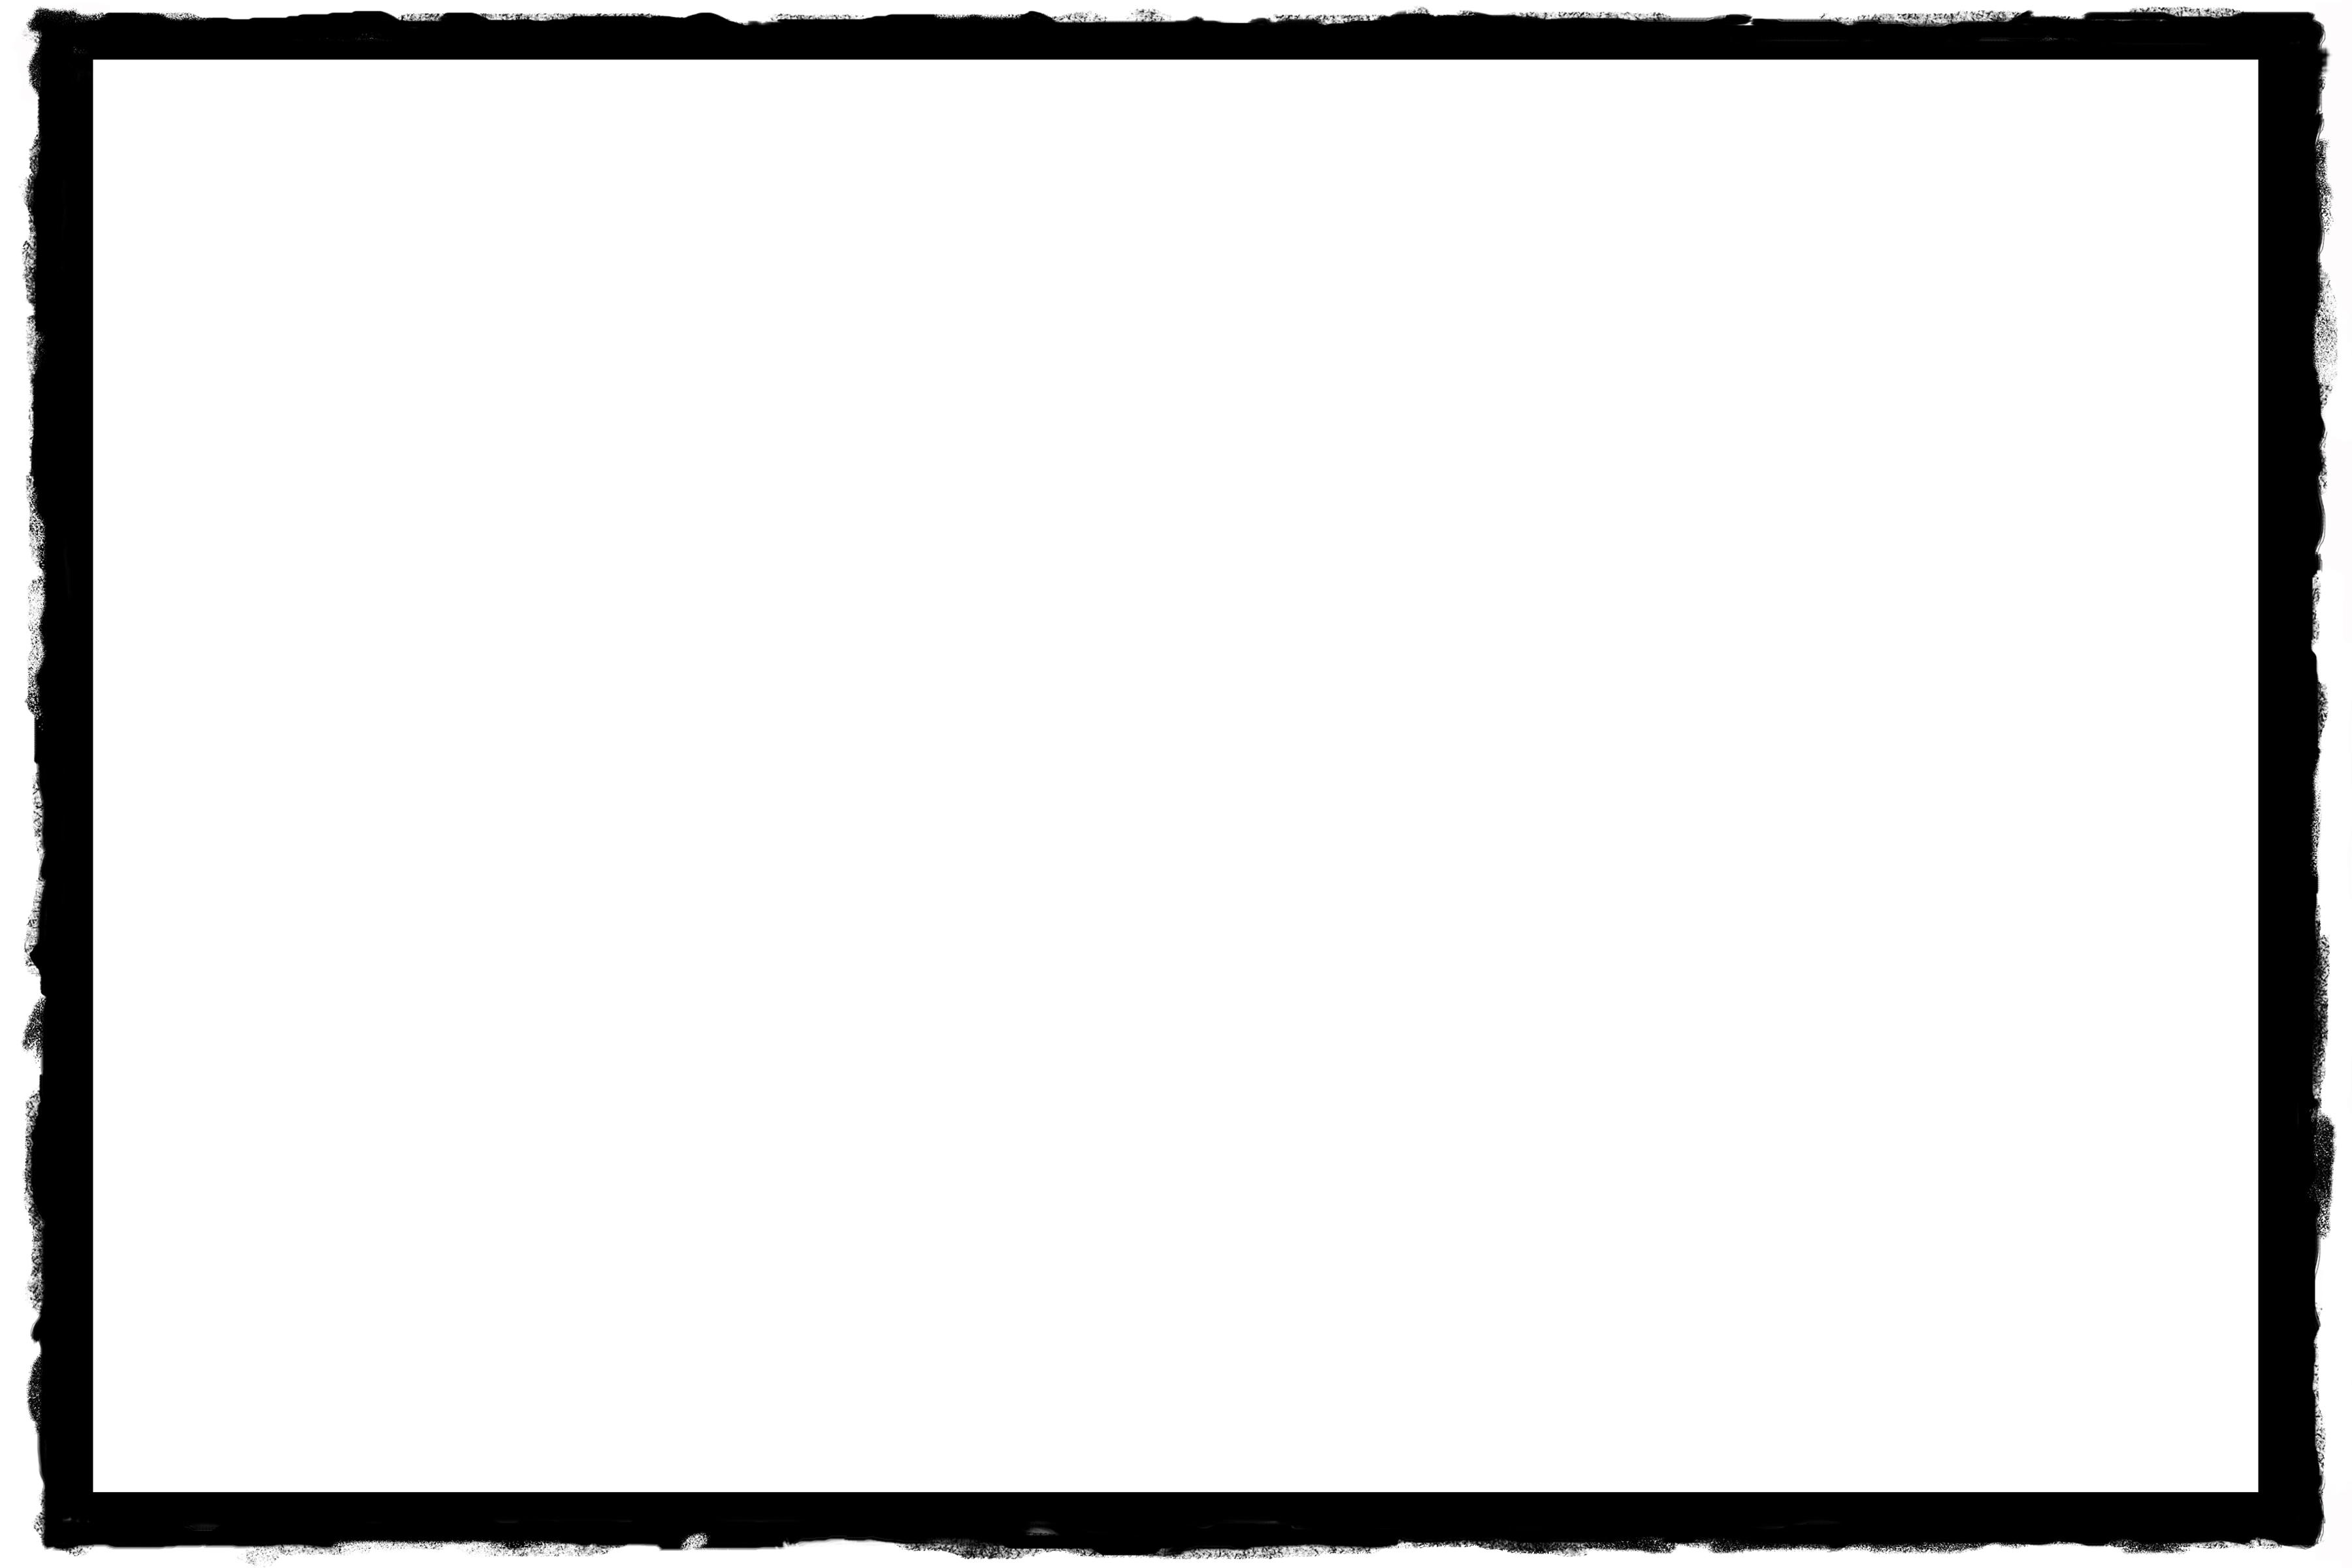 Cool Borders Cliparts on Scalloped Page Border